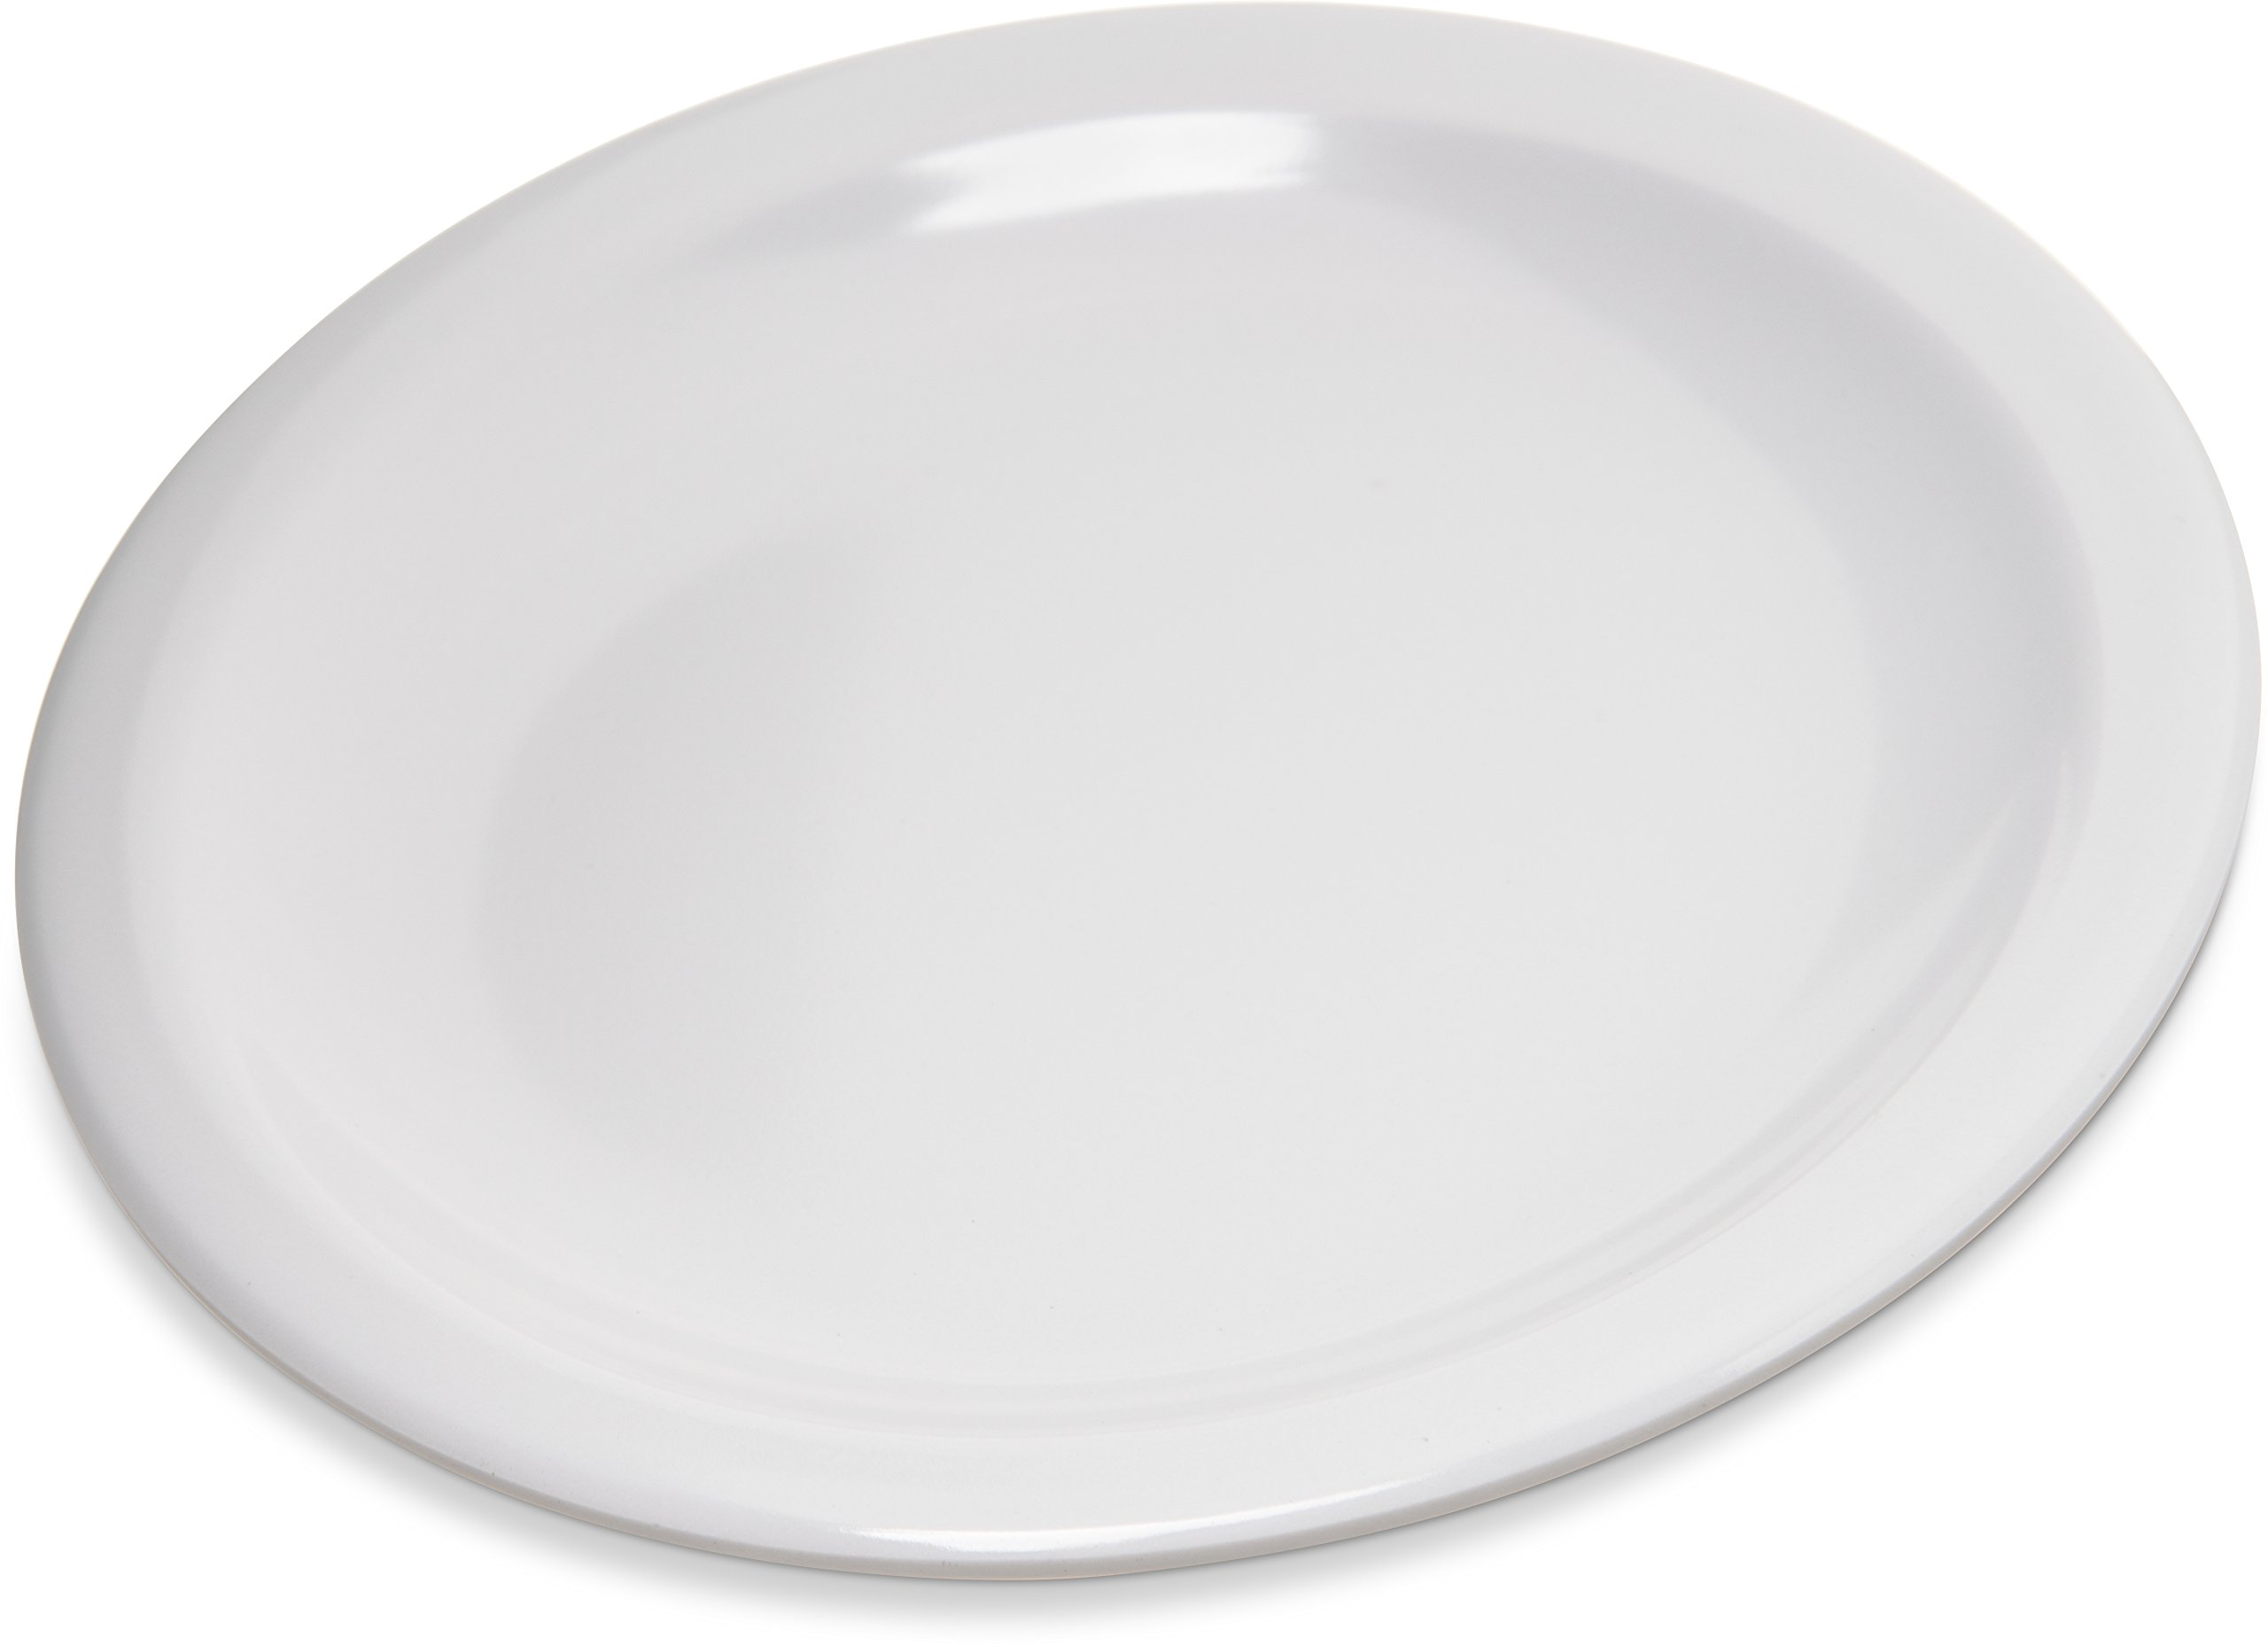 Carlisle 4350502 Dallas Ware Melamine Bread and Butter Plate, 0.66 x 5.58'', White (Case of 48)